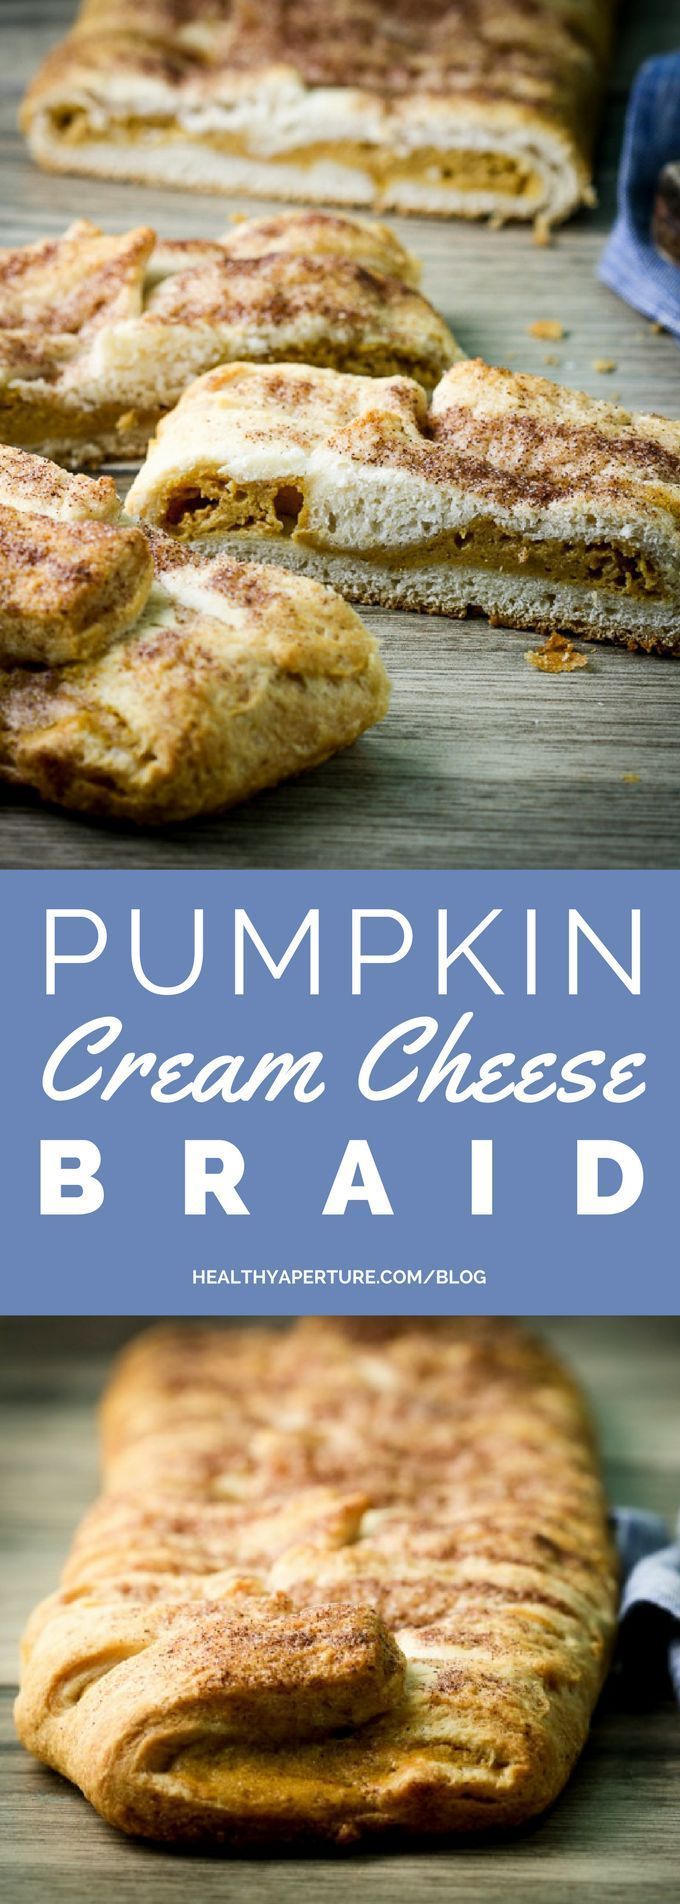 cool Turn cream cheese, pumpkin and crescent rolls into a quick-and-easy braided brea...